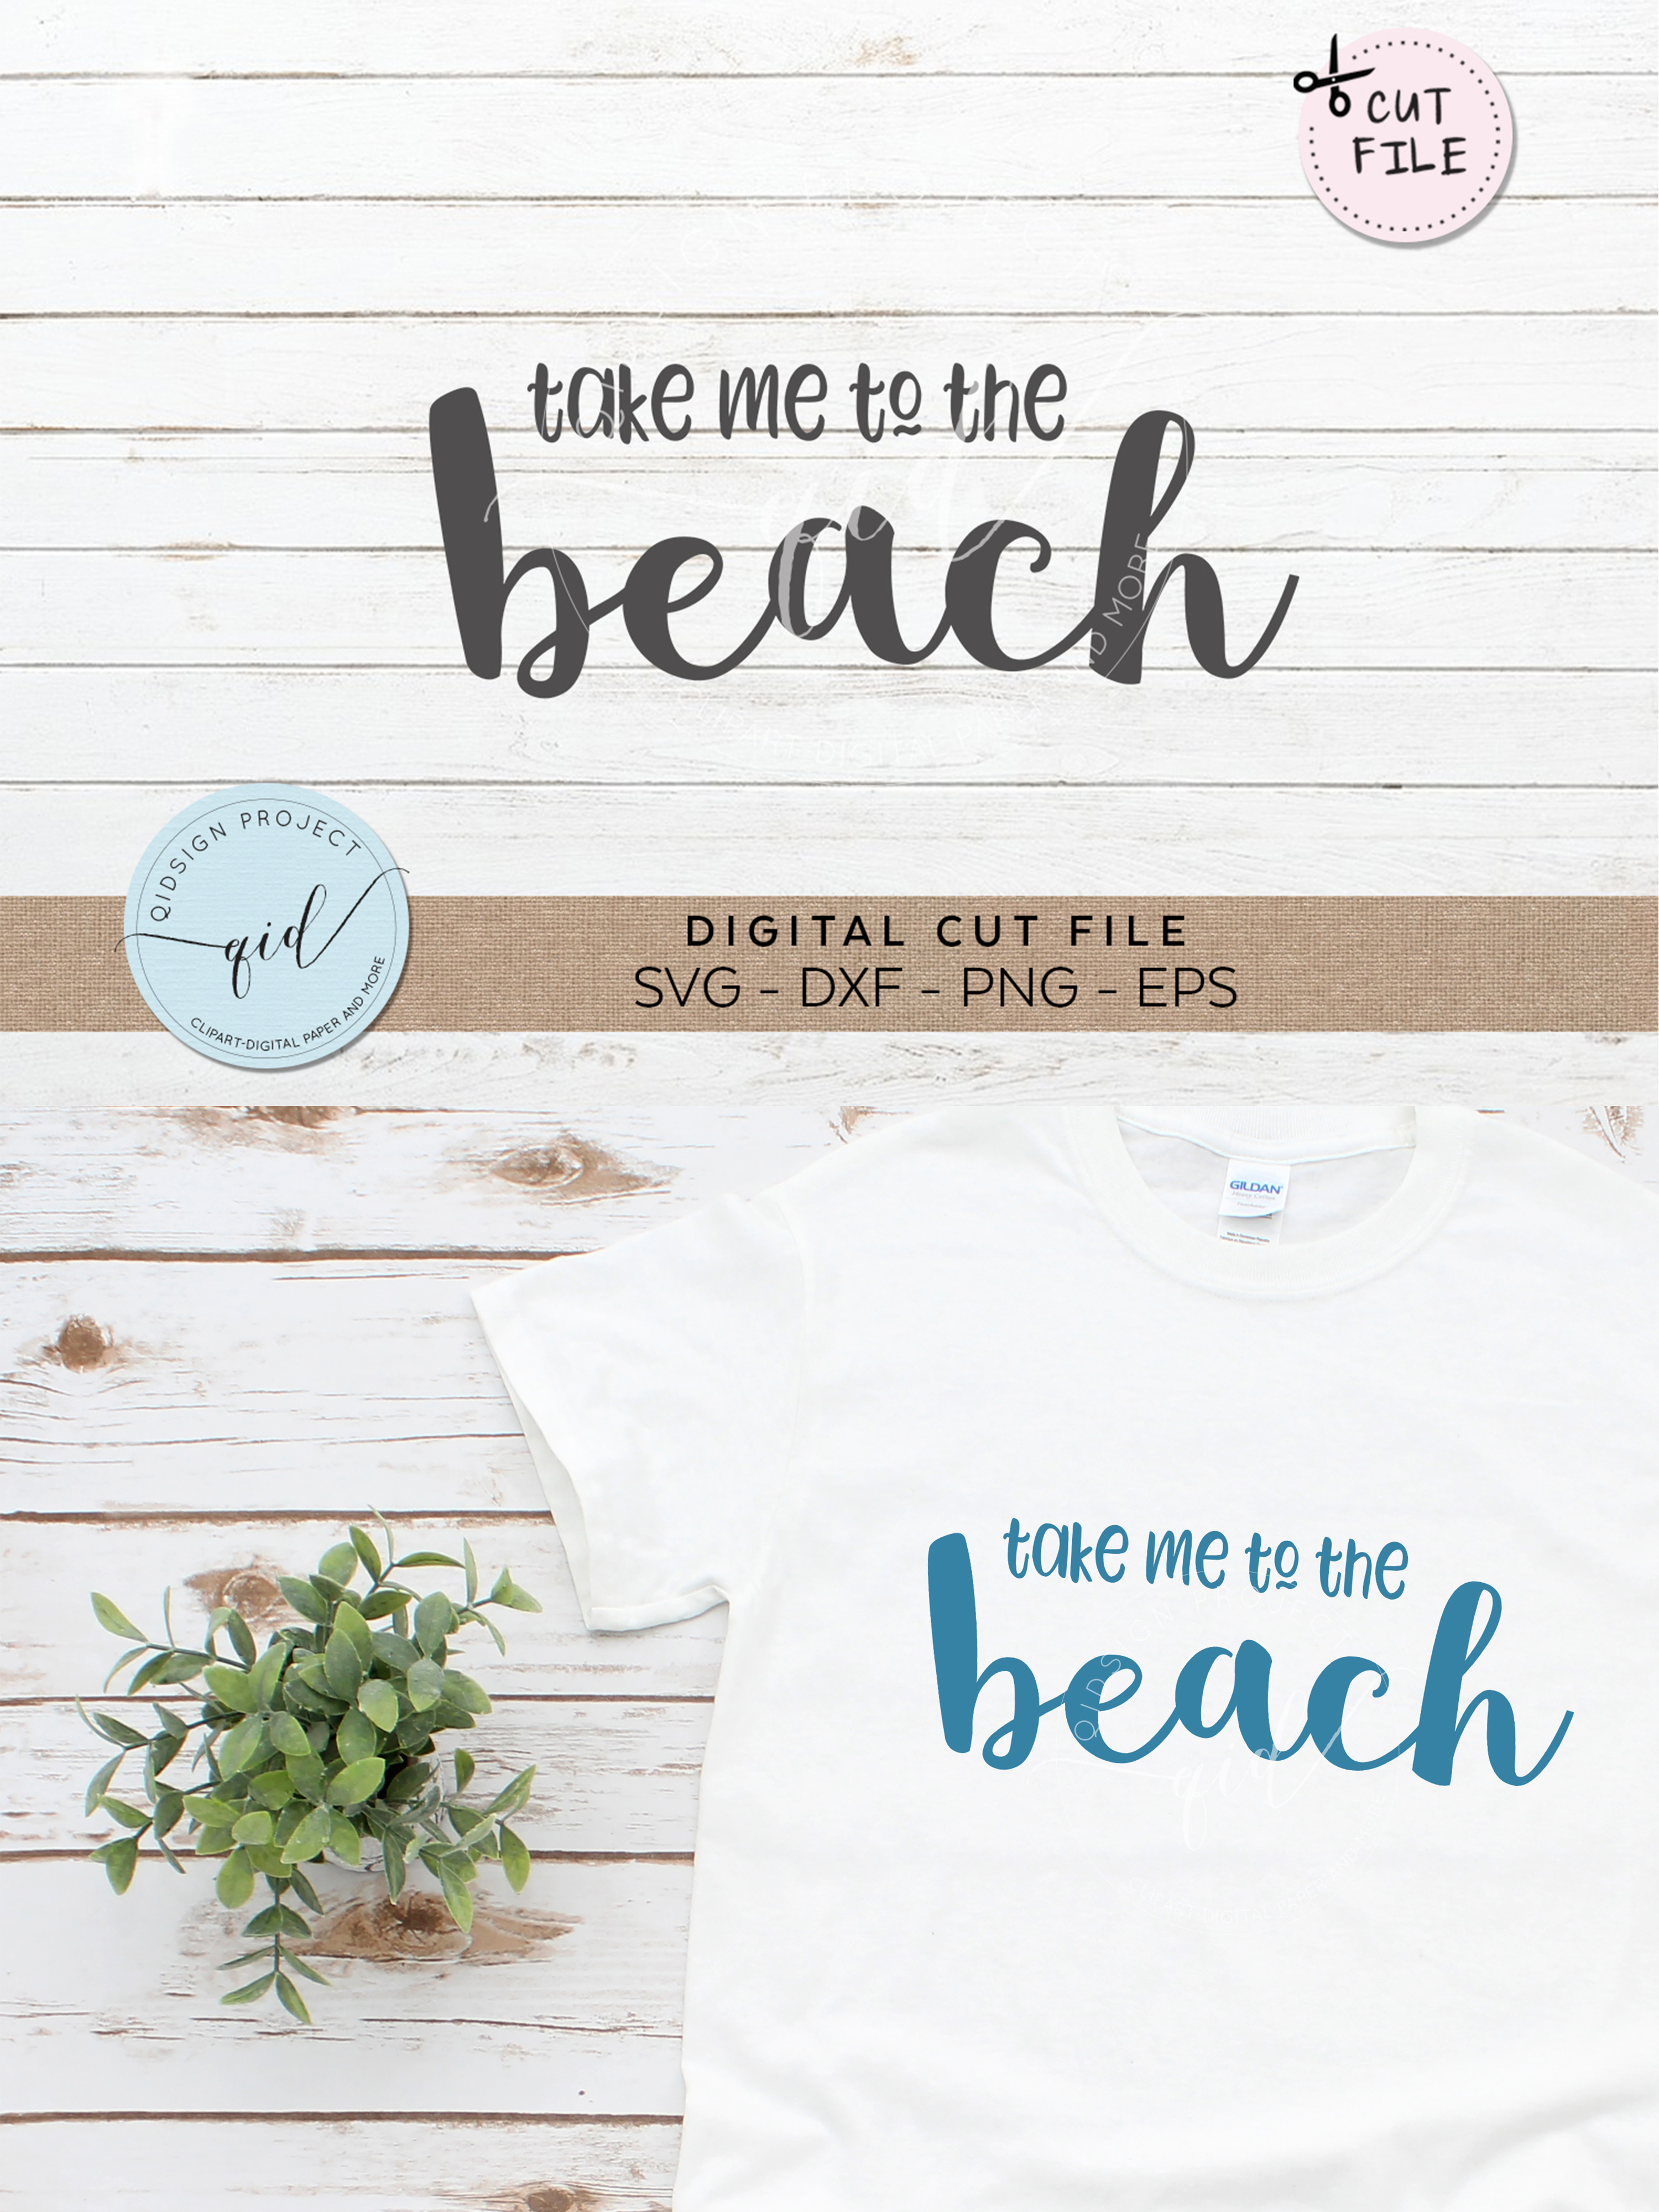 Take me to the beach SVG DXF PNG EPS example image 2